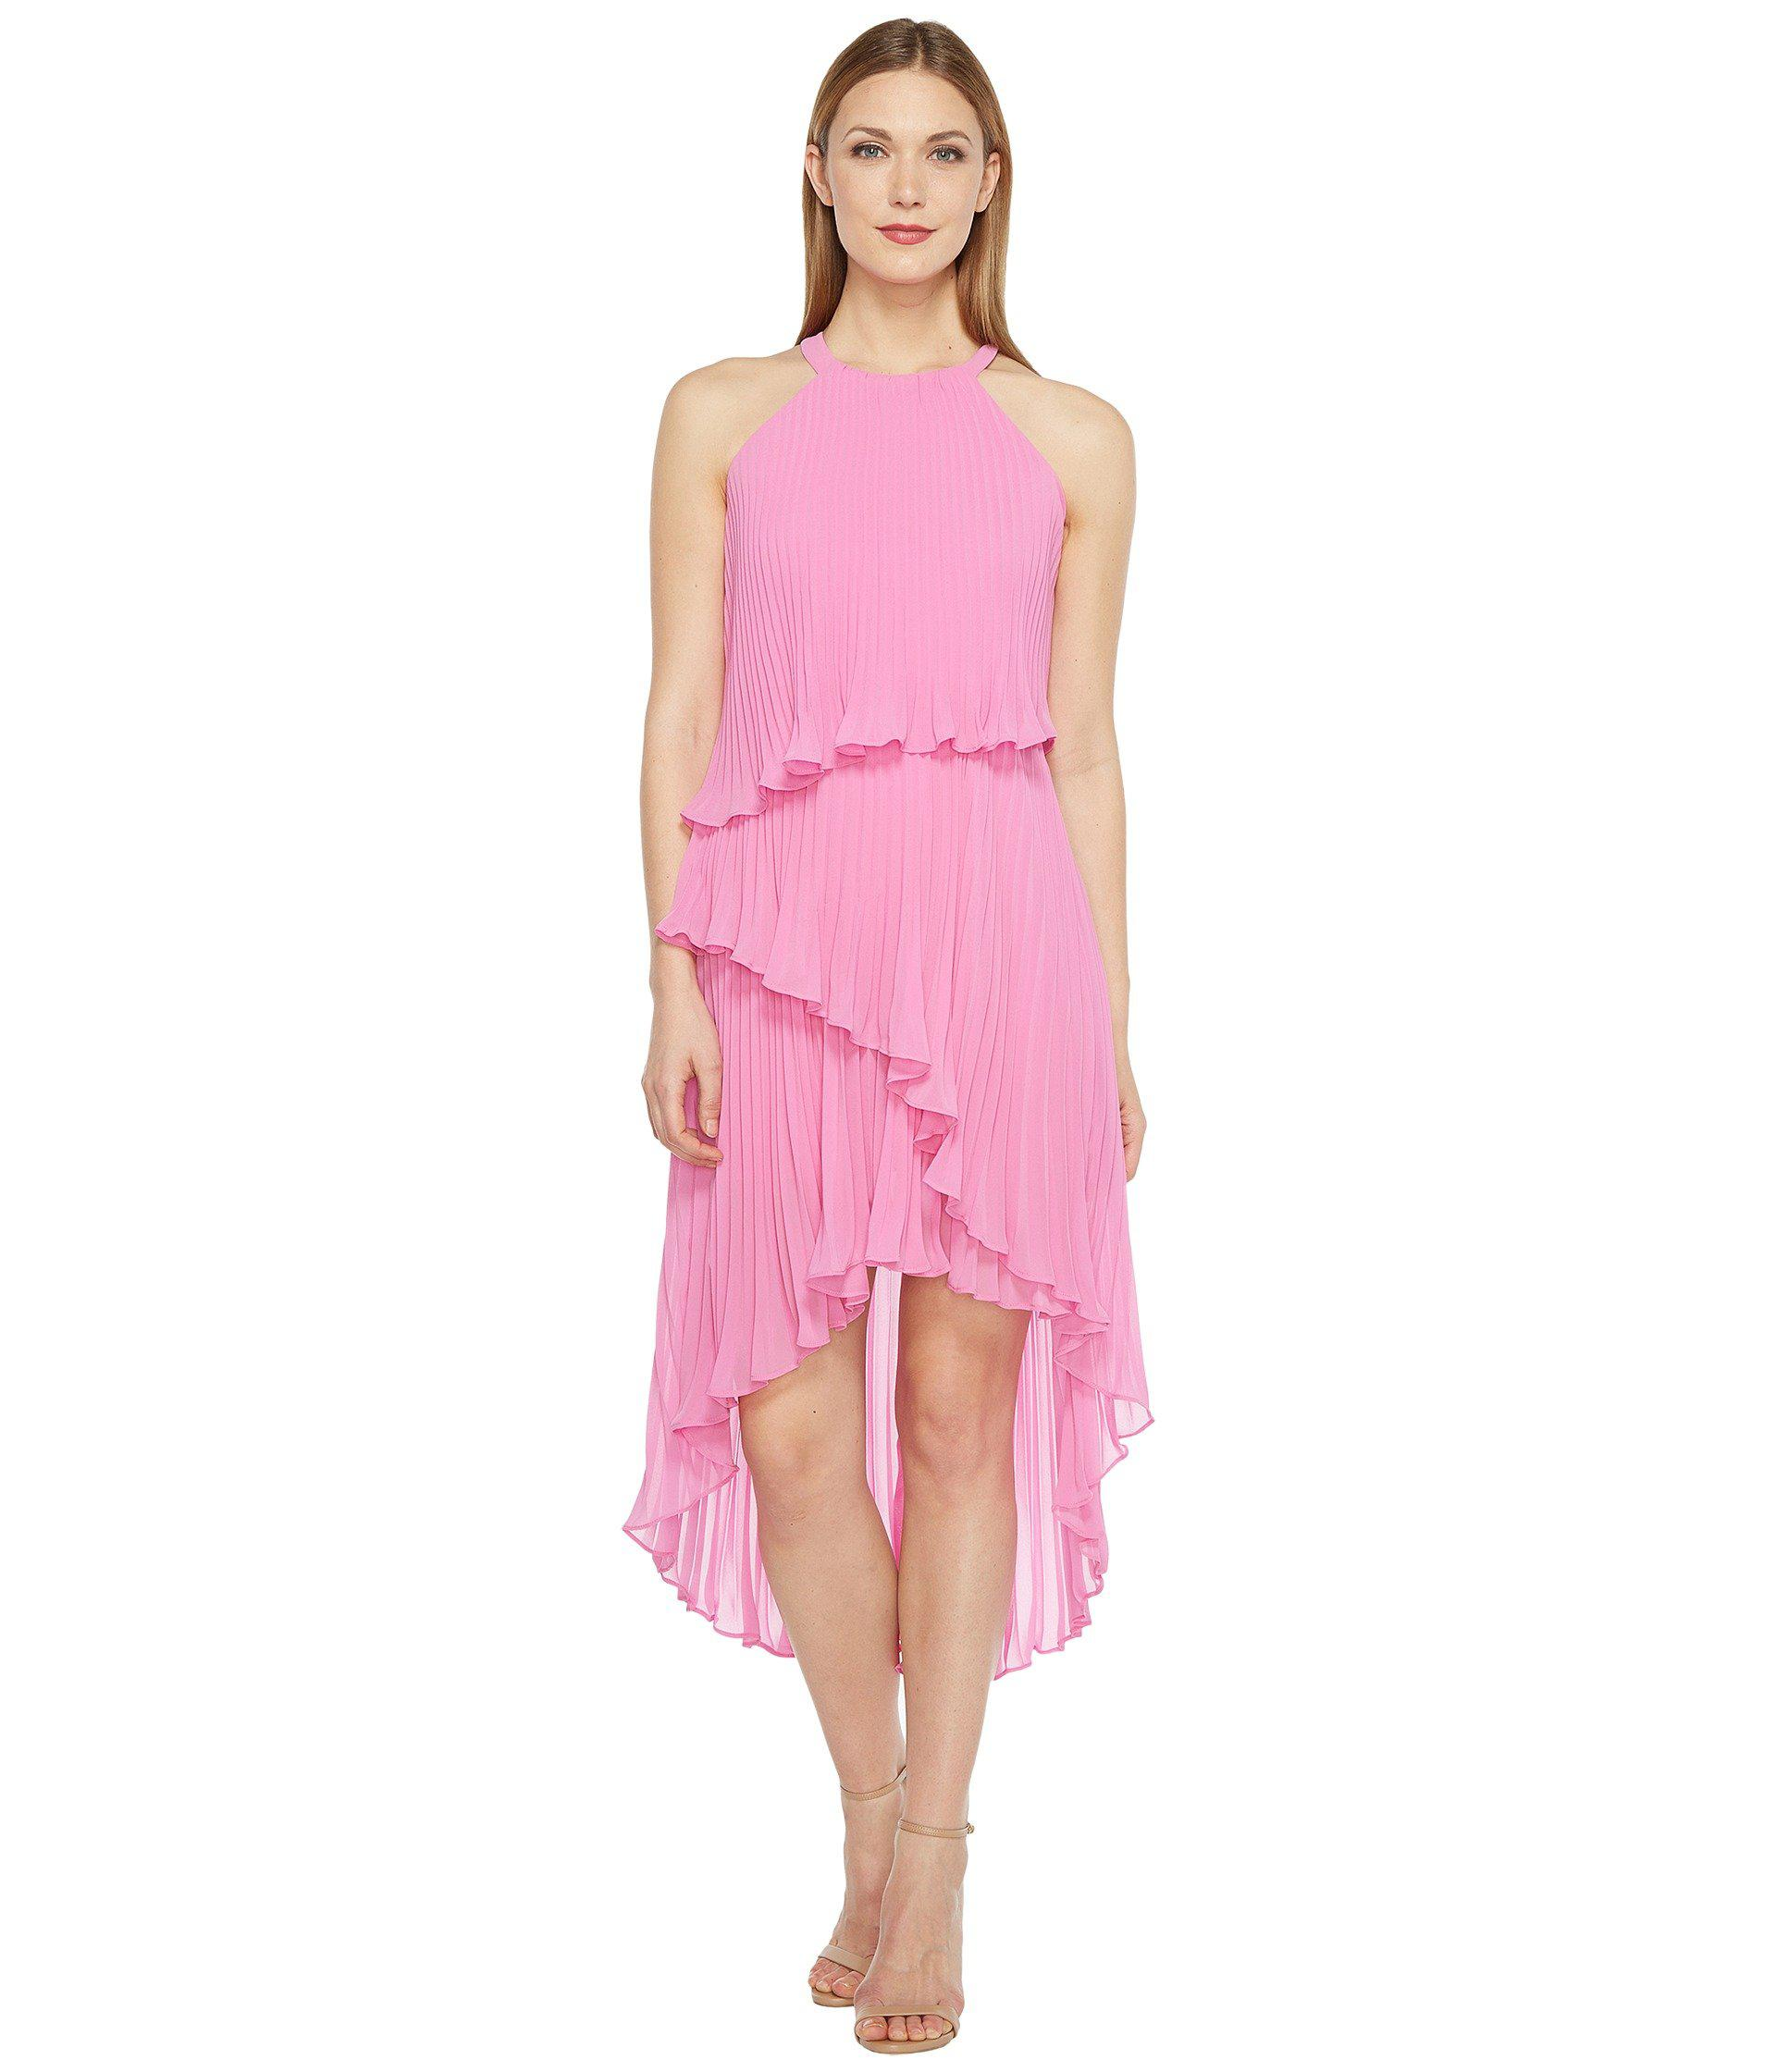 6021efcf45 Lyst - Laundry by Shelli Segal Tiered Chiffon Dress in Pink